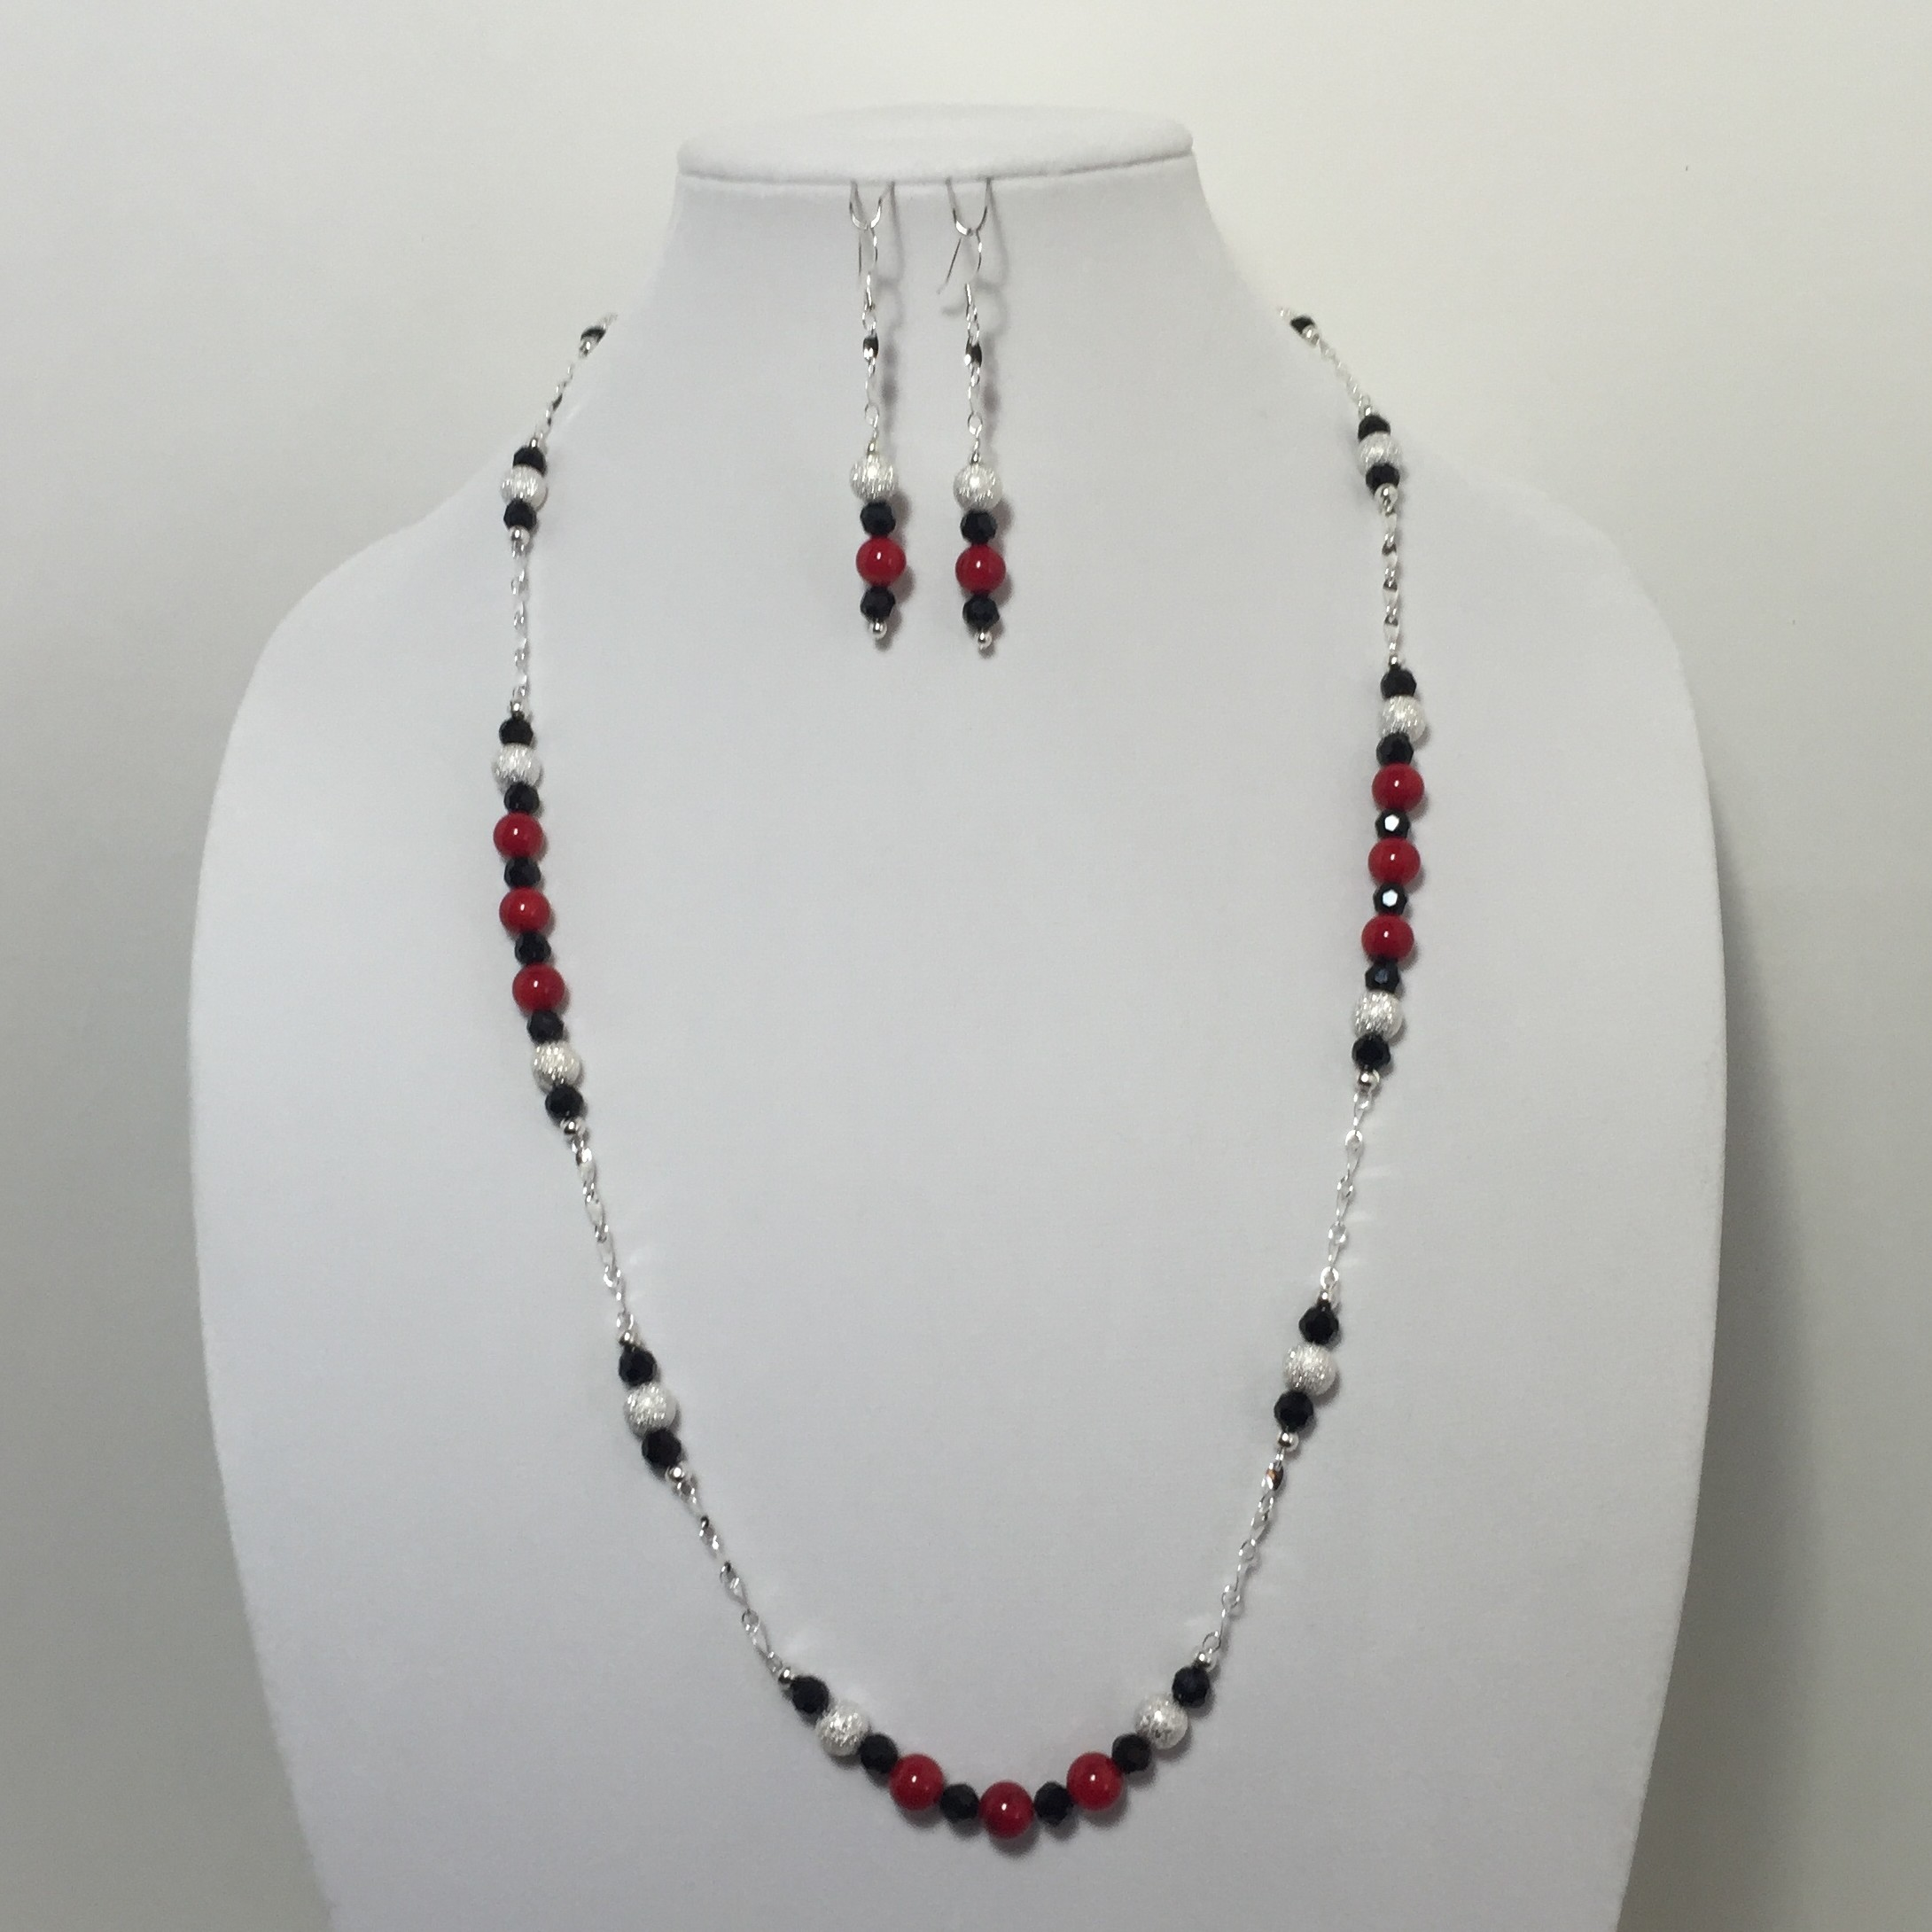 Coral, Crystal and Silver Necklace and Earrings Set